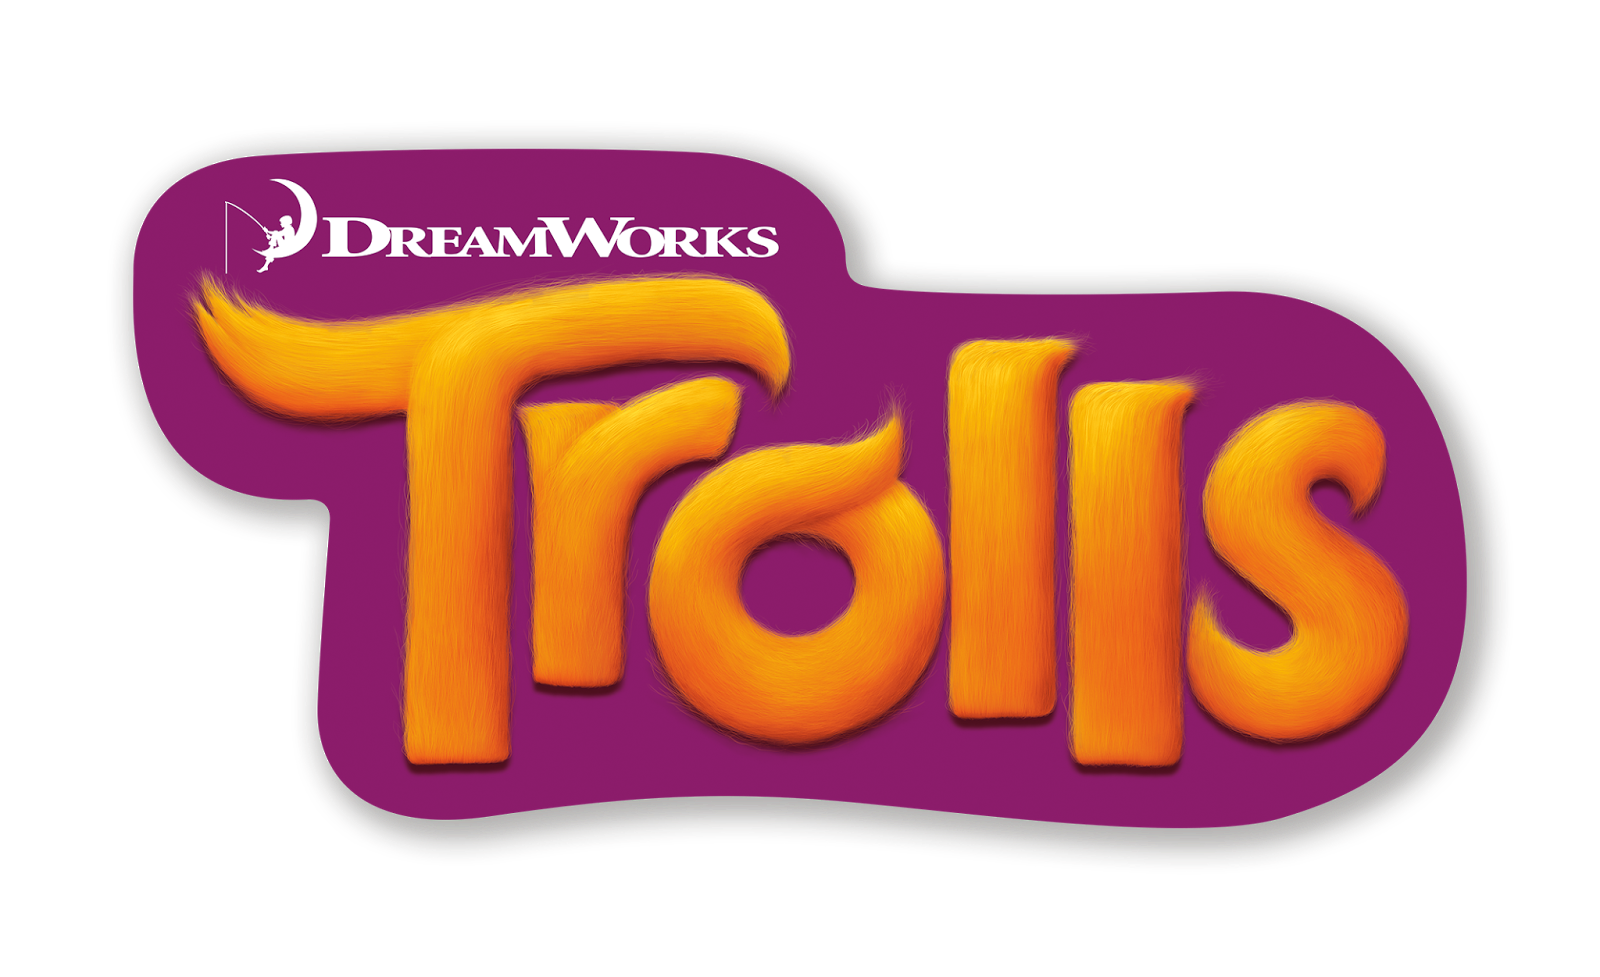 Dreamworks trolls characters png. Madhouse family reviews keychain